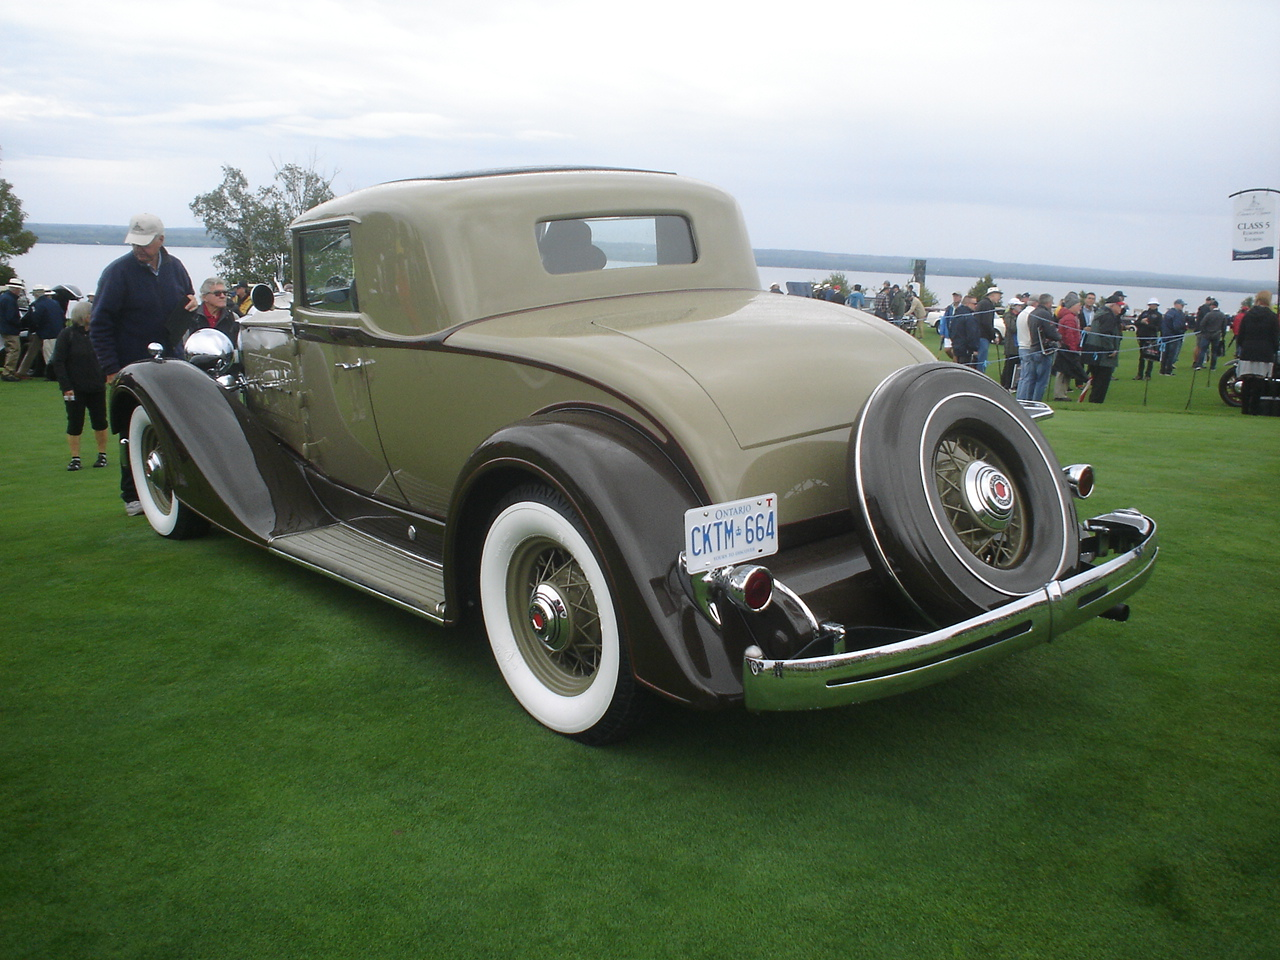 1934 Packard Eleventh Series Model 1101 Type 718 Eight 2-4 Passenger Rumble Seat Coupe -3.JPG